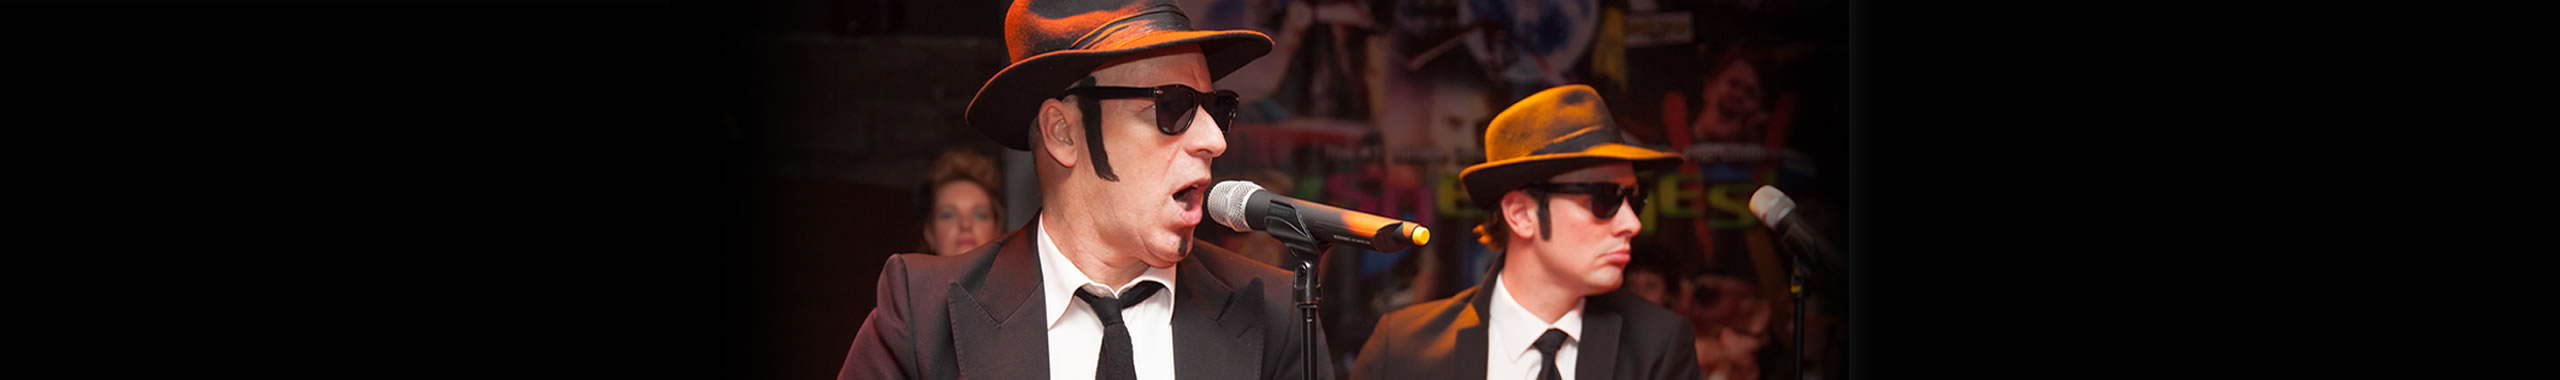 Themafeest Blues Brothers